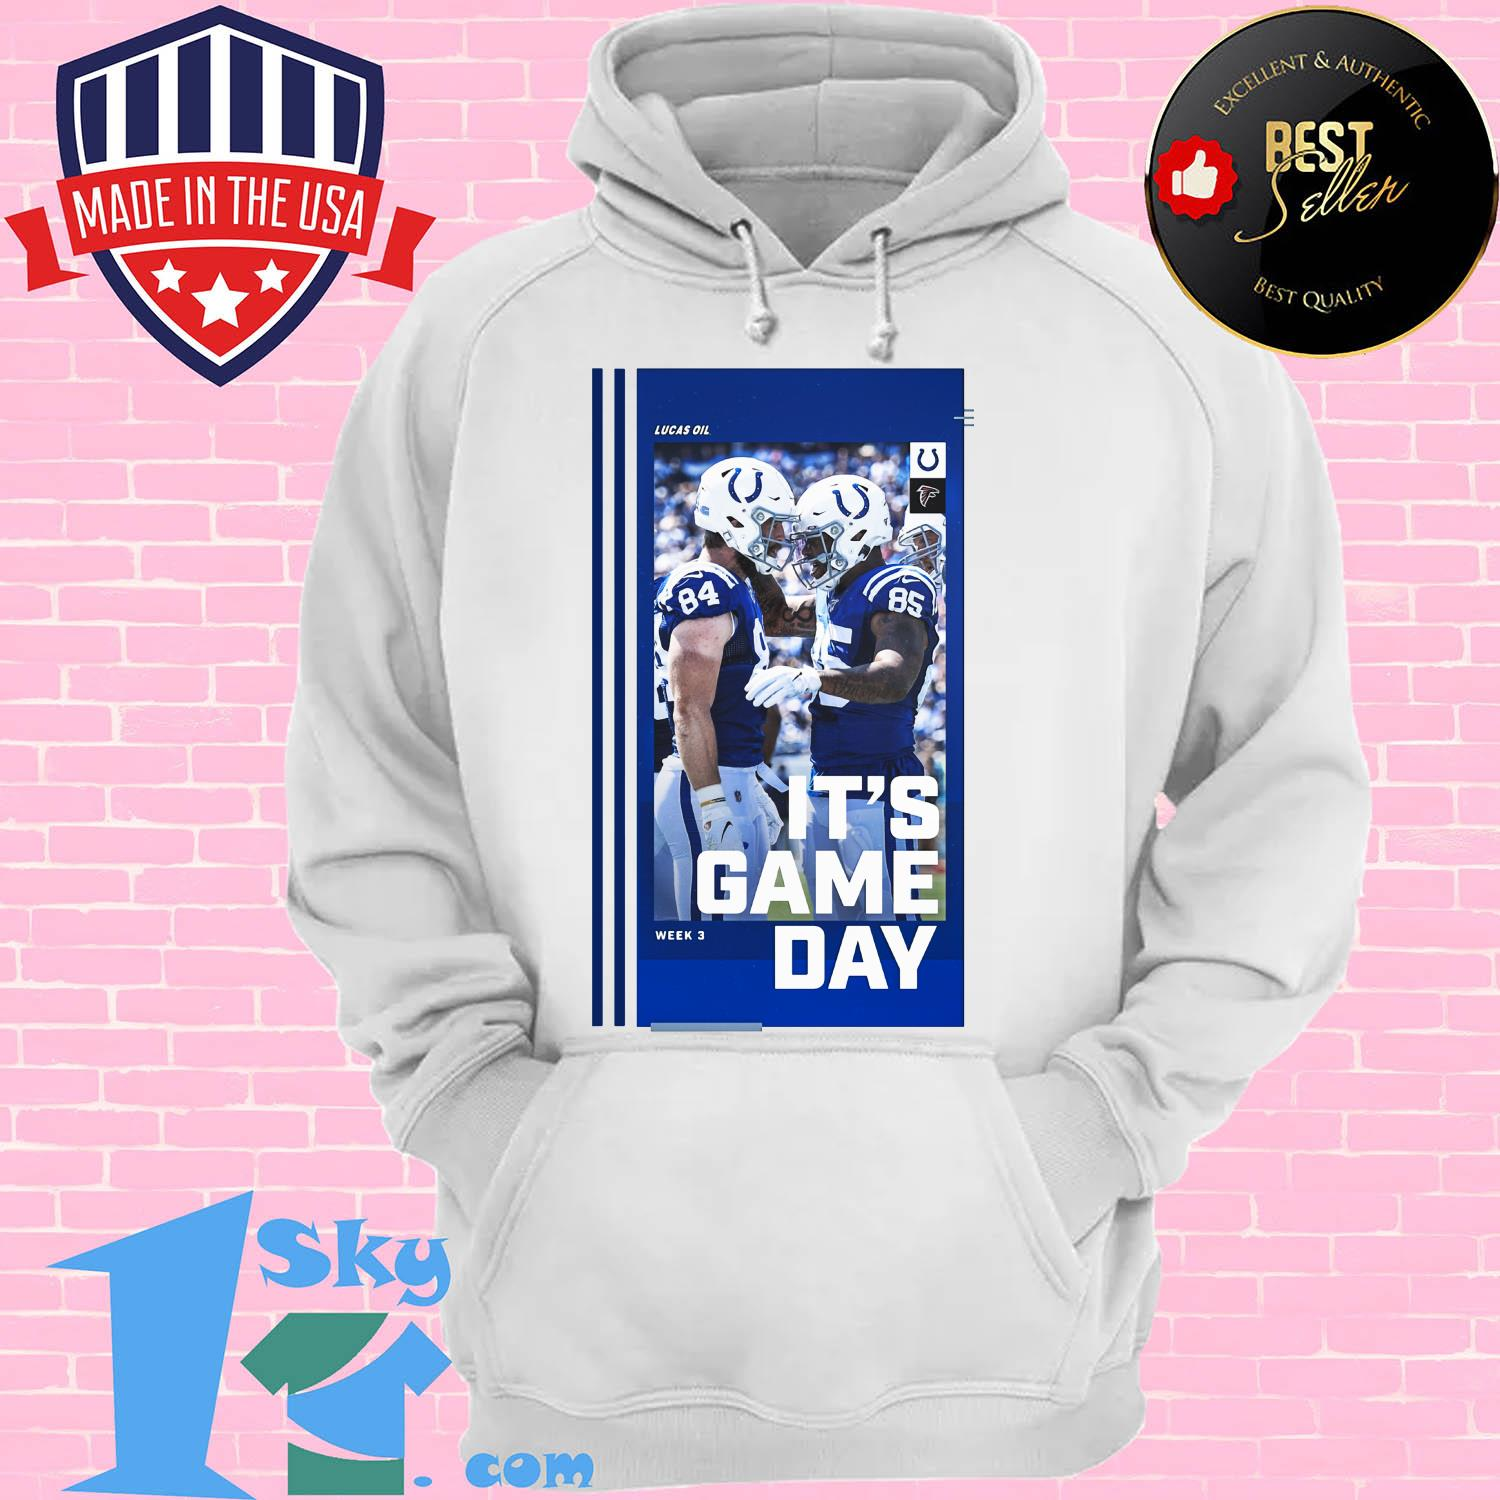 reputable site 282a4 4b4f2 Atlanta Falcons and Indianapolis Colts Lucas Oil It's gameday shirt